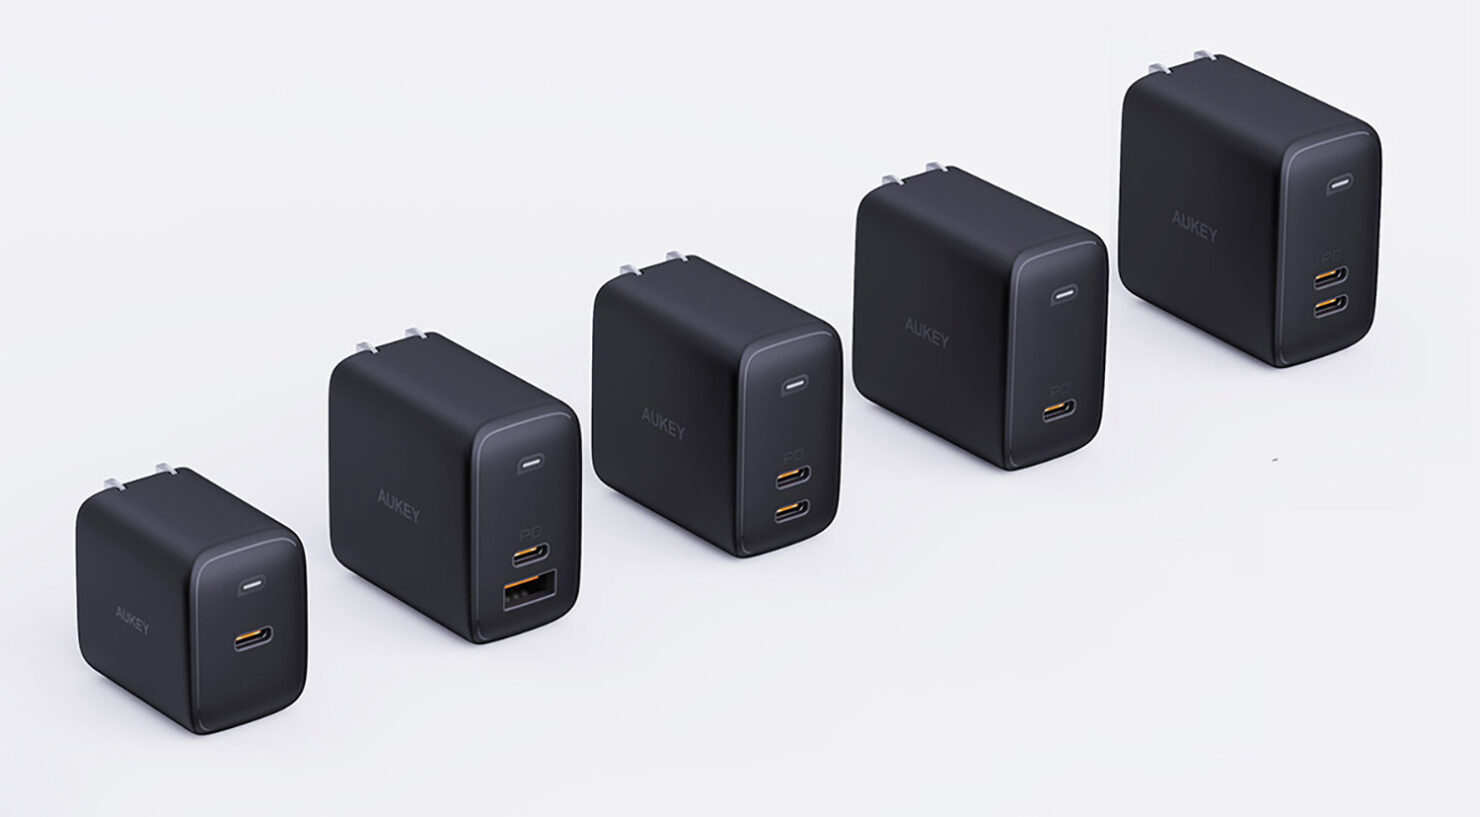 AUKEY'S Omnia Series of Chargers Are the World's Fastest - Can Top up Gadgets up to a 100W on a Single Port